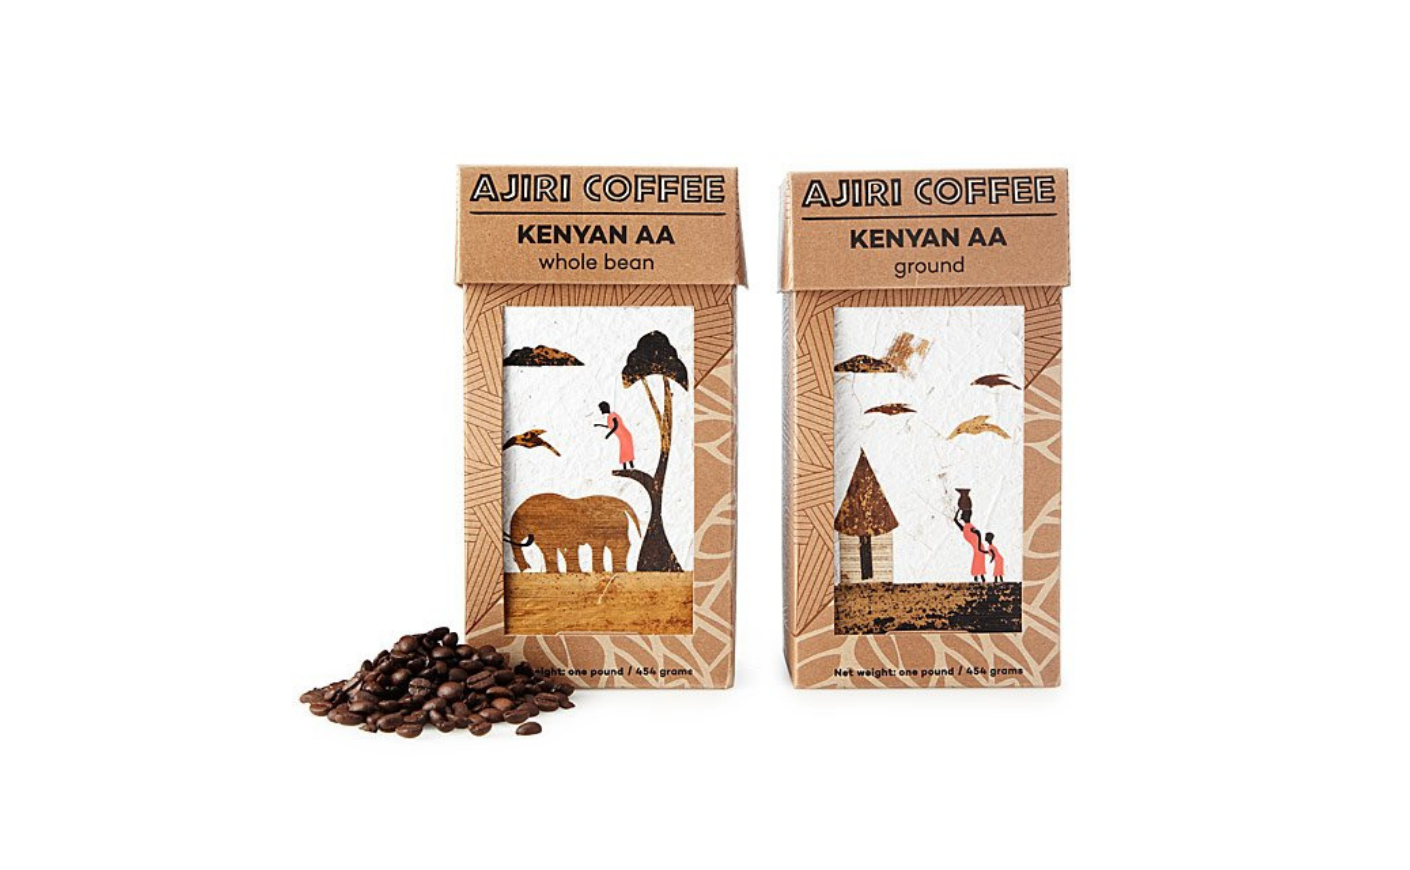 bags of coffee w/ illustrations